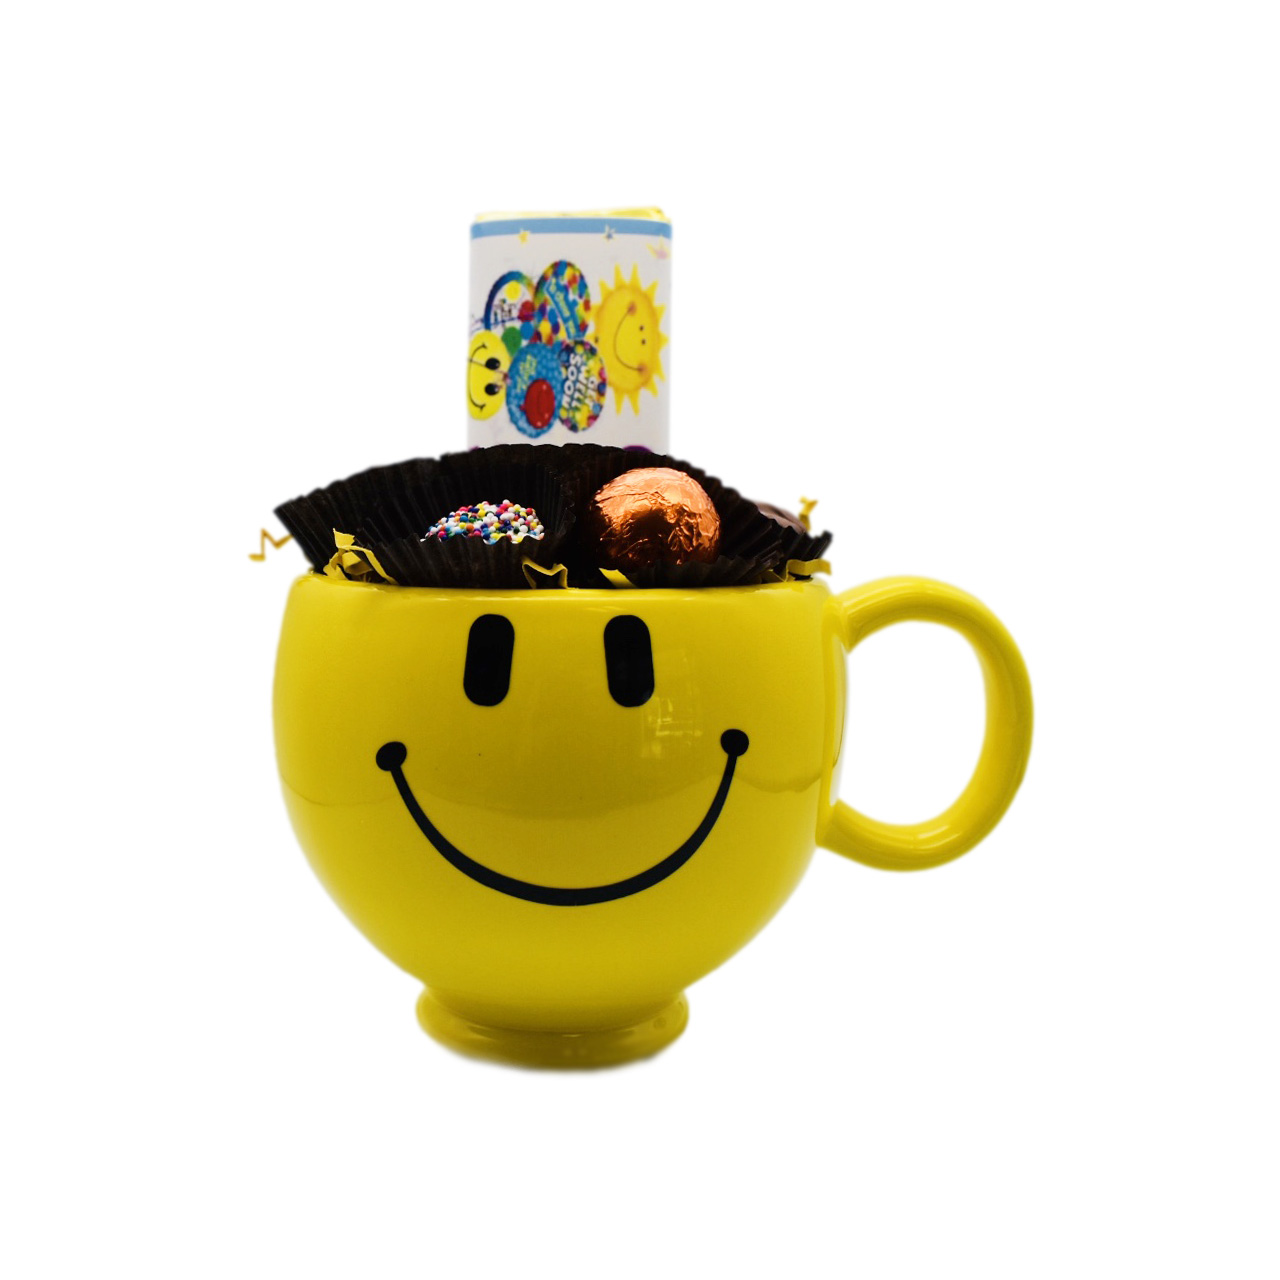 smiley face mug 2